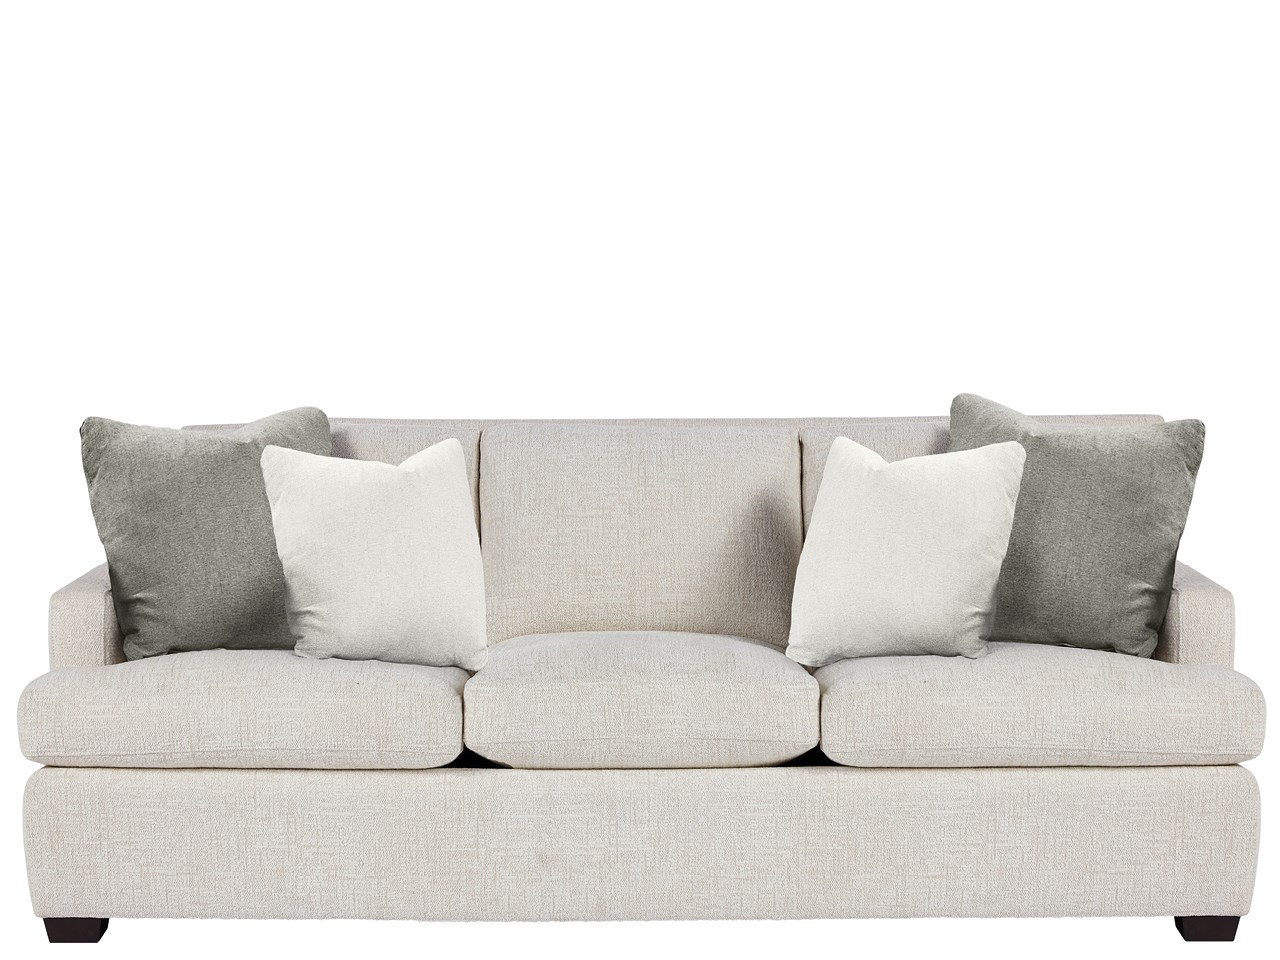 Emmerson Sofa - Special Order